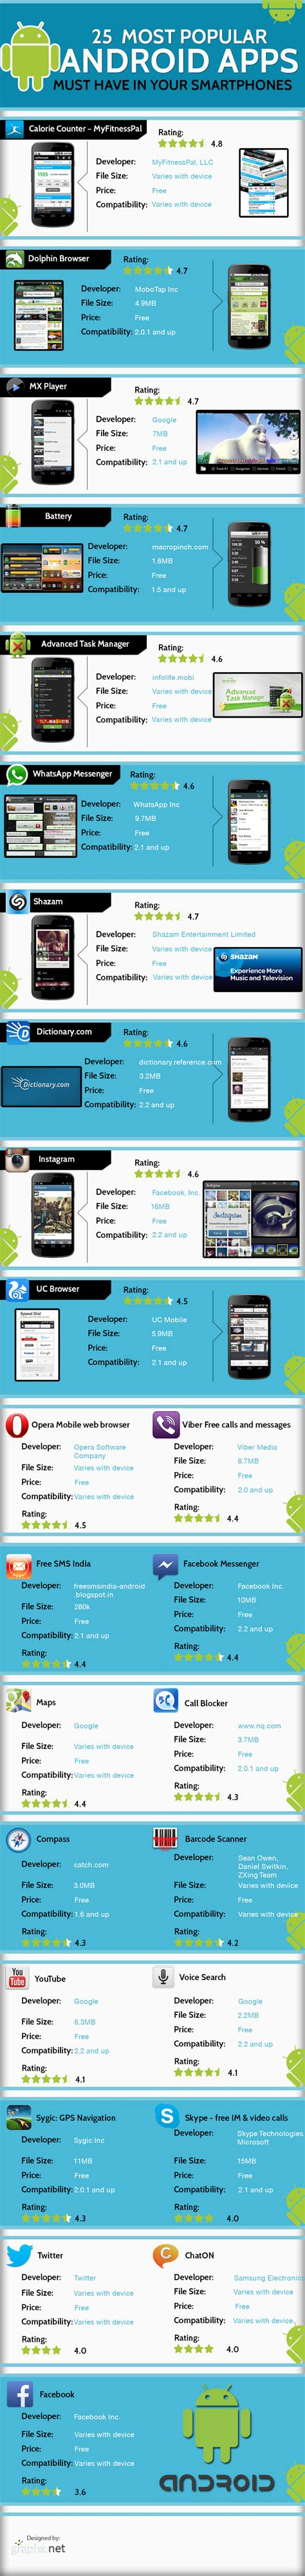 most popular android apps top 25 most popular free andriod apps for phones and tablets brandongaille